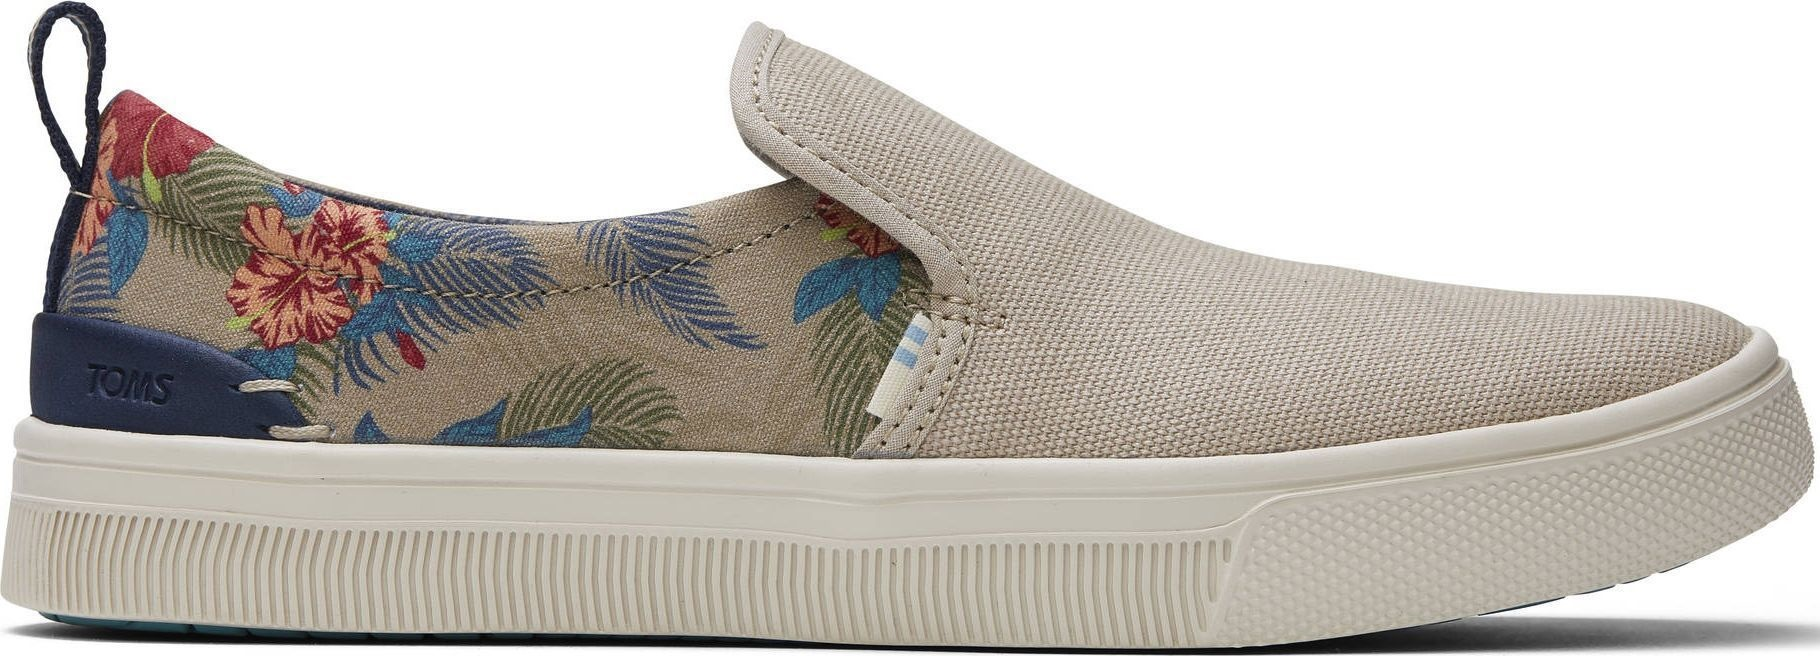 TOMS Oxford Tropical Print Women's Trvl Lite Natural 41